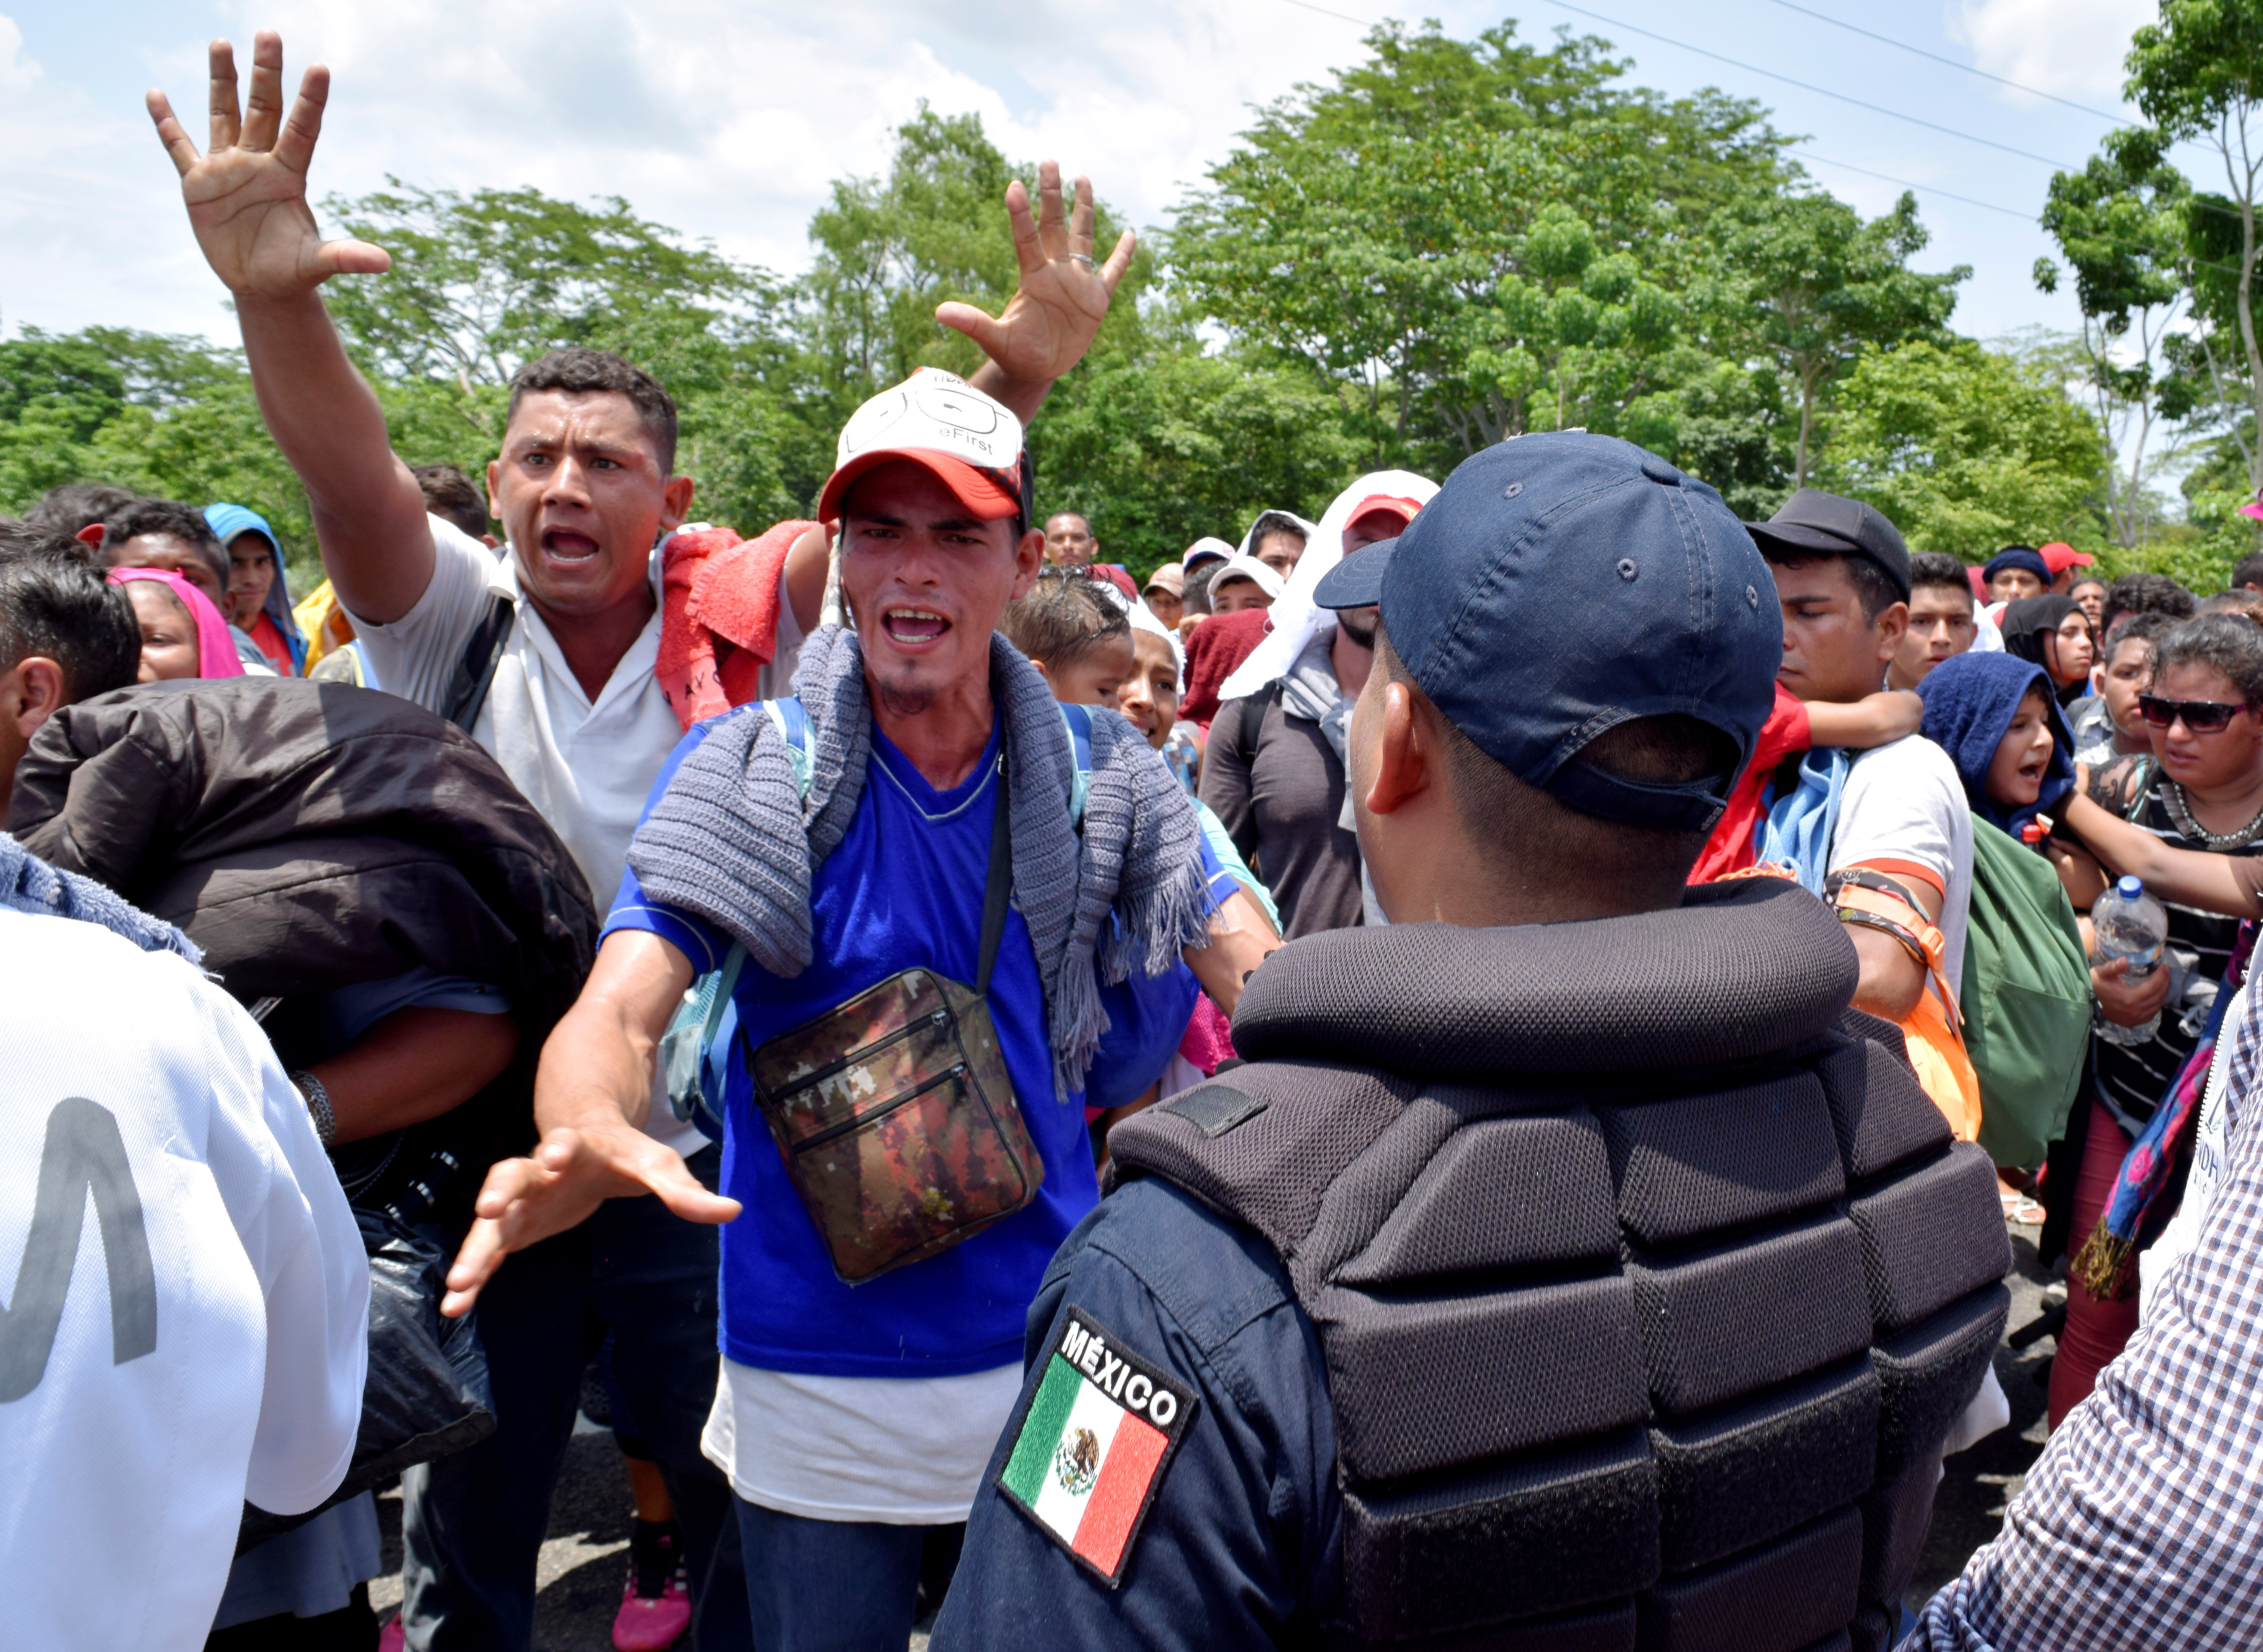 Migrants gesture while arguing with a federal police officer during a joint operation by the Mexican government to stop a caravan of Central American migrants on their way to the U.S., at Metapa de Dominguez